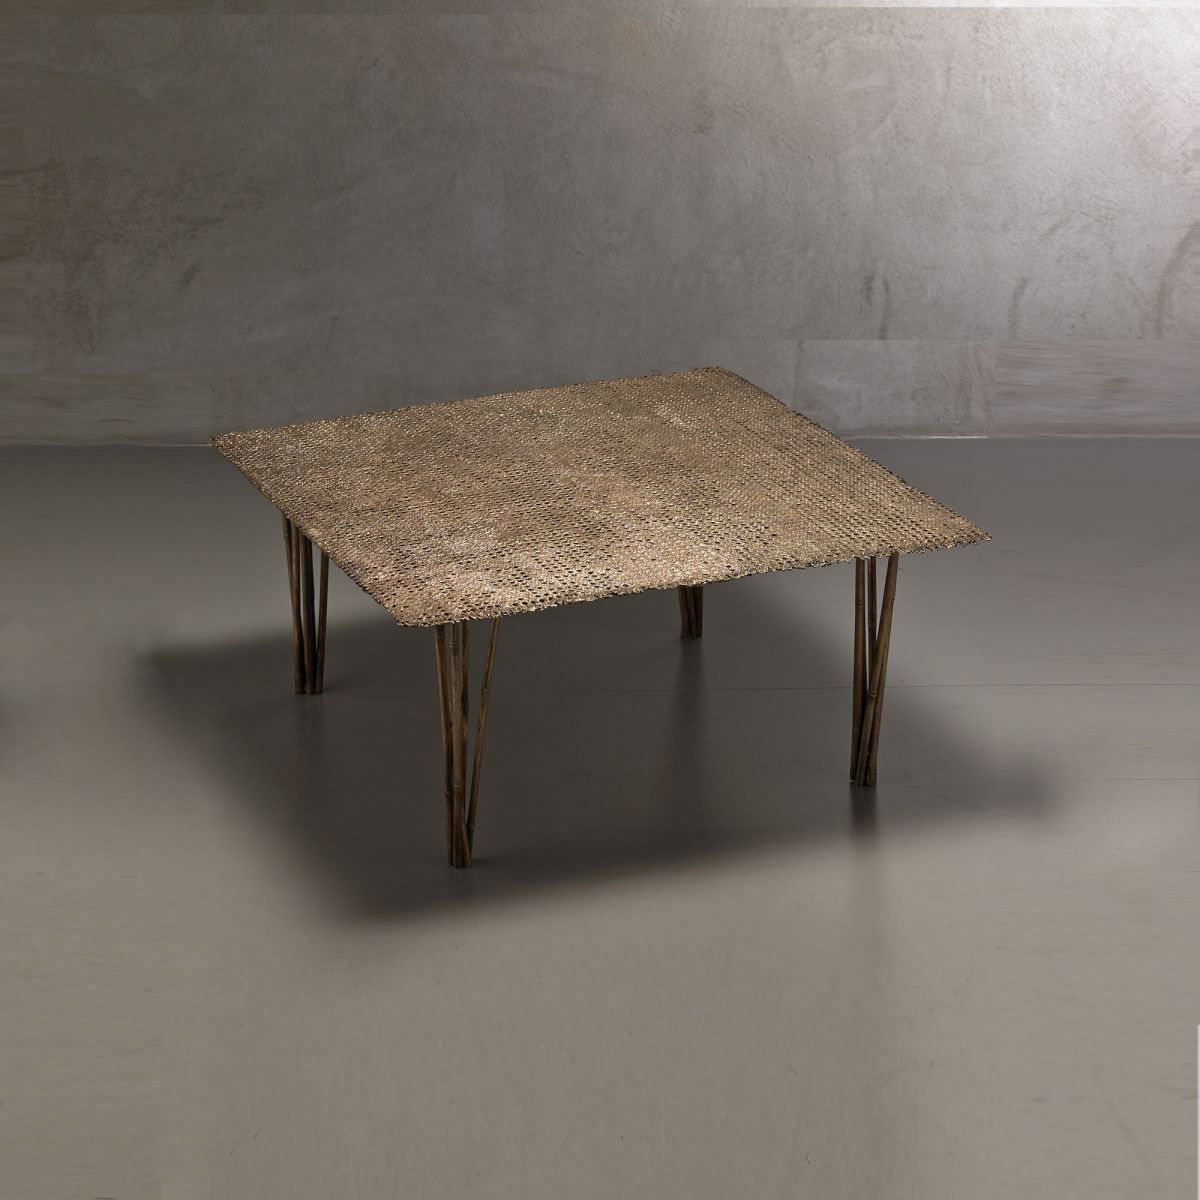 'Paglia di Vienna' collection low table Osanna Visconti pic-1